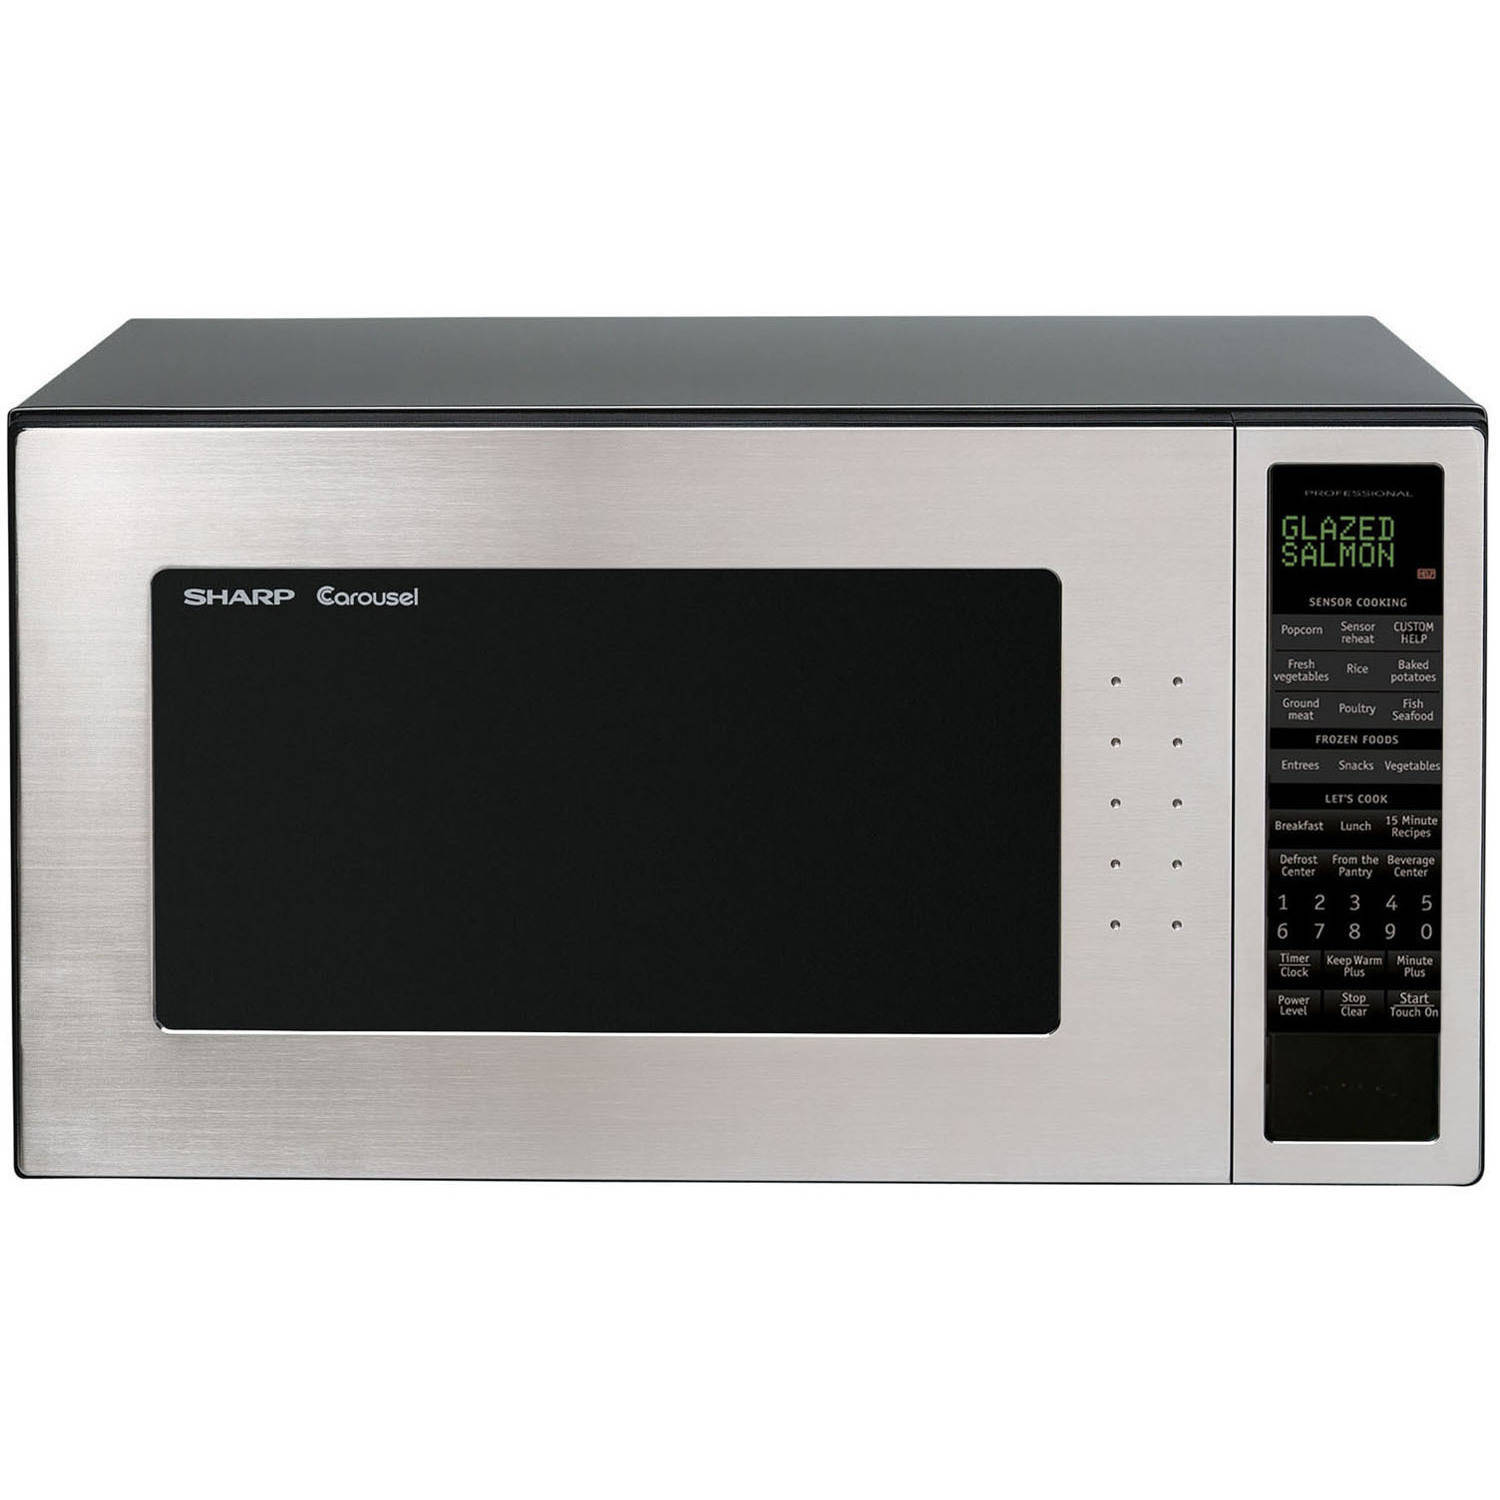 Sharp R530est 2 0 Cu Ft 1200w Full Size Microwave Oven Stainless Steel